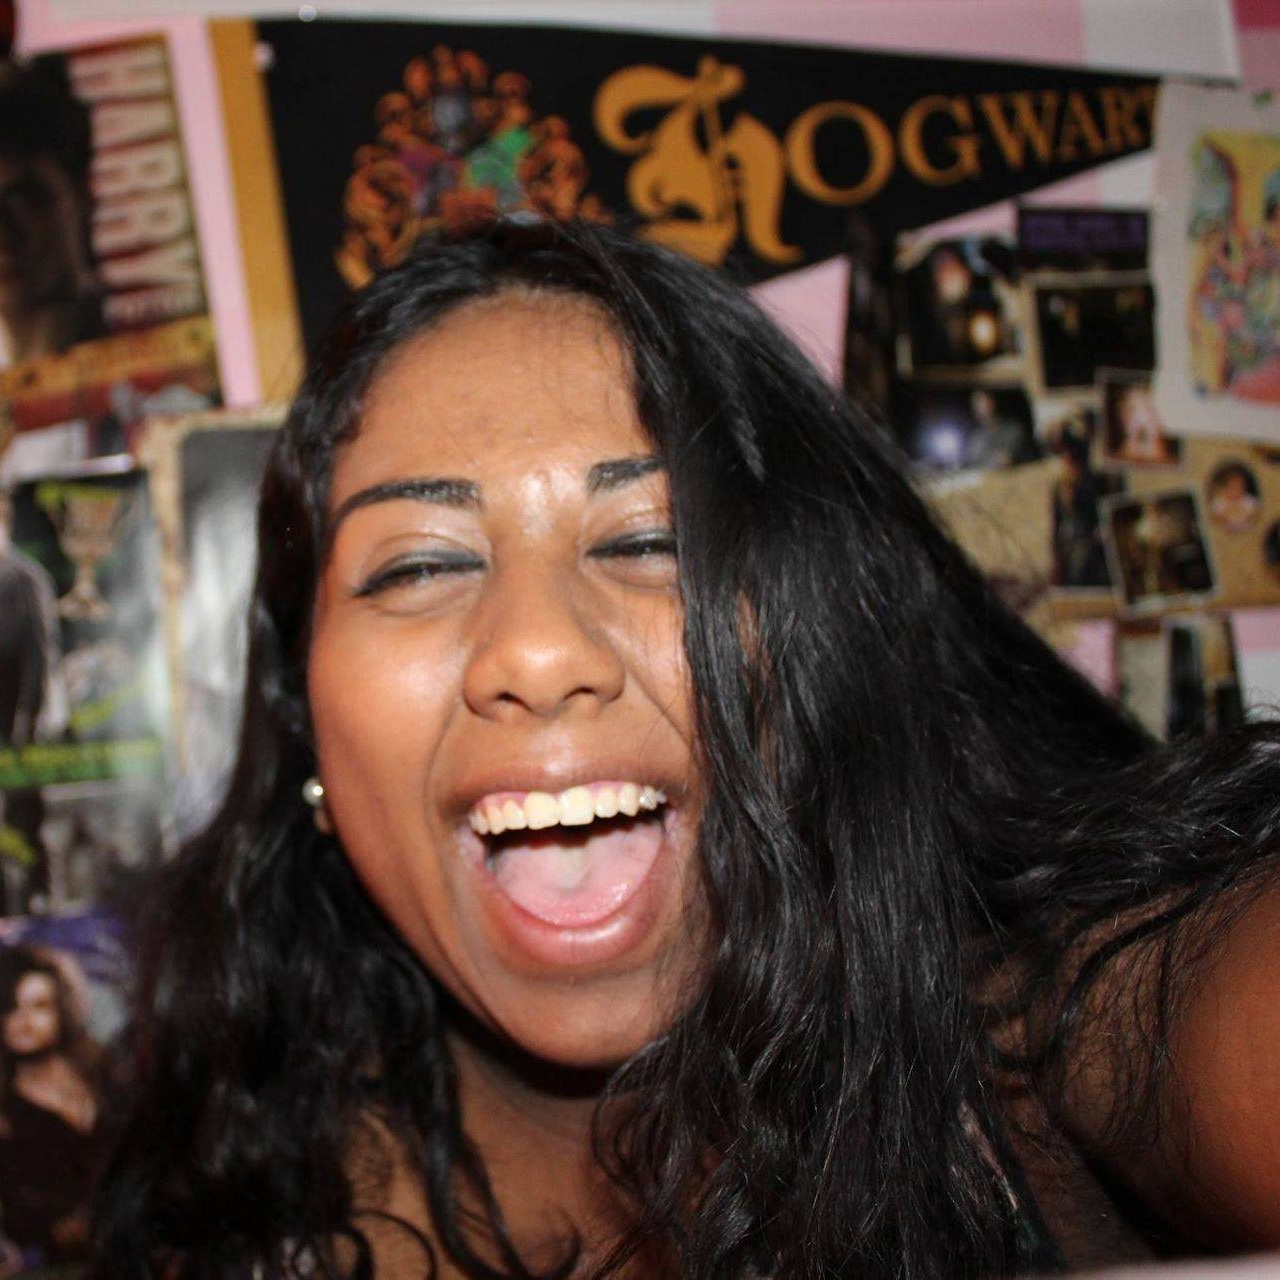 Nisha Srinivasa - Now At: Teach for AmericaClass of 2018 - Majors: Political Science and FrenchOther Activities: You Mean More Coordinator, AXO Pledge (#litb), Challah Bread Consumer, Spice Girls Enthusiast, Clumsy Dancer, Social Media Connoisseur, Dog WorshipperFun Fact: Cried over Grey's Anatomy: Season 11, Episode 21 every night for six weeks.About Me: Synesthesiac, (like to think I am a) brainiac, (really am a) photo maniac, (Gemini is my) Zodiac (sign).Nisha's Awards:2016 UCLASSIC - Los Angeles, CA (UCLA)Outstanding Witness (17/20 Ranks)2015 Anoka Championship Qualifier Tournament - Anoka, MN (Hamline University)All-National Witness (17/20 Ranks)2015 Boise Regional Tournament - Boise, ID (University of Idaho)All-Region Witness (17/20 Ranks)2015 Paradise Invitational - Santa Barbara, CA (UC Santa Barbara)Outstanding Witness (19/20 Ranks) 2014 Average American Mock Trial Invitational - Berkeley, CA (UC Berkeley)Outstanding Attorney (20/20 Ranks)Outstanding Witness (18/20 Ranks)